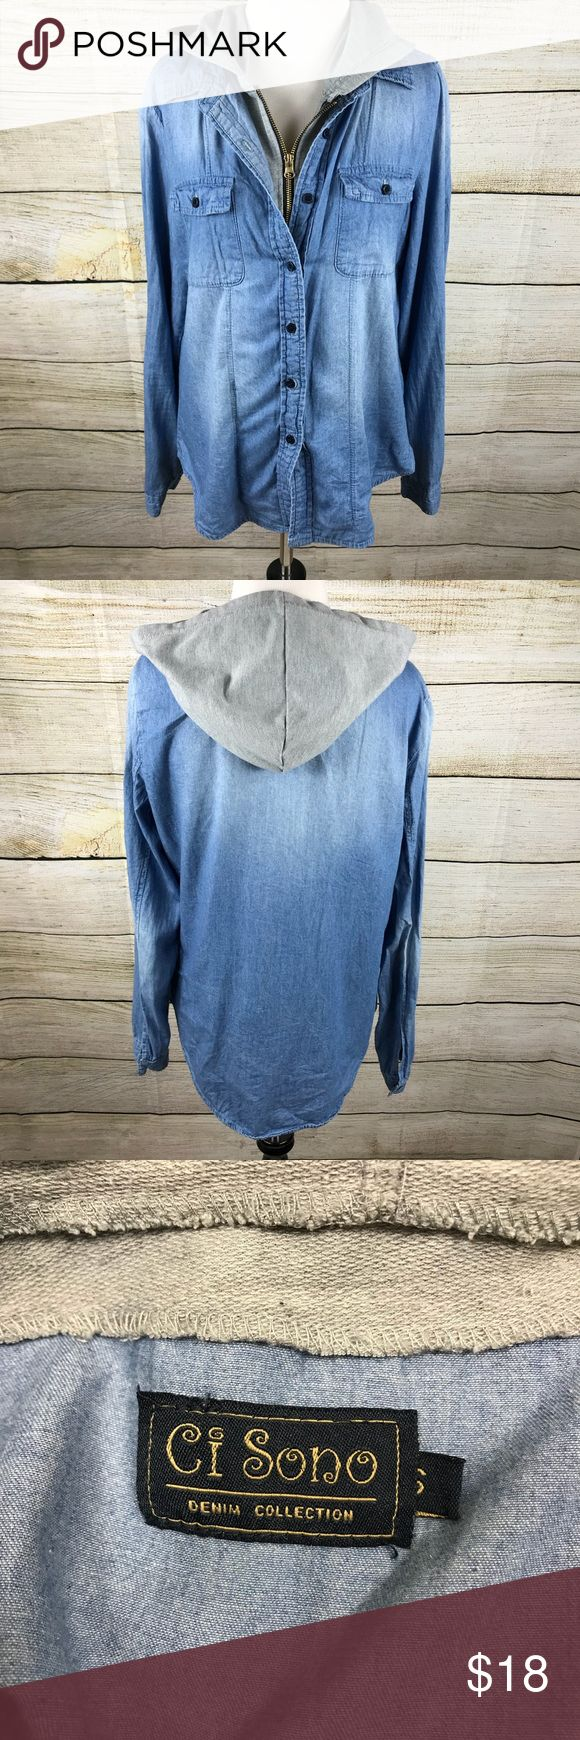 Ci Sono Denim Zip Up Excellent preowned condition. Size small. Denim with grey sweatshirt material along zipper and hood. Sleeves button at ends. Zips and buttons up.25 inches long in front, 27 inches in back. 20.5 inches armpit to armpit. Two button pockets on front. Ci Sono Ci Sono Tops Button Down Shirts